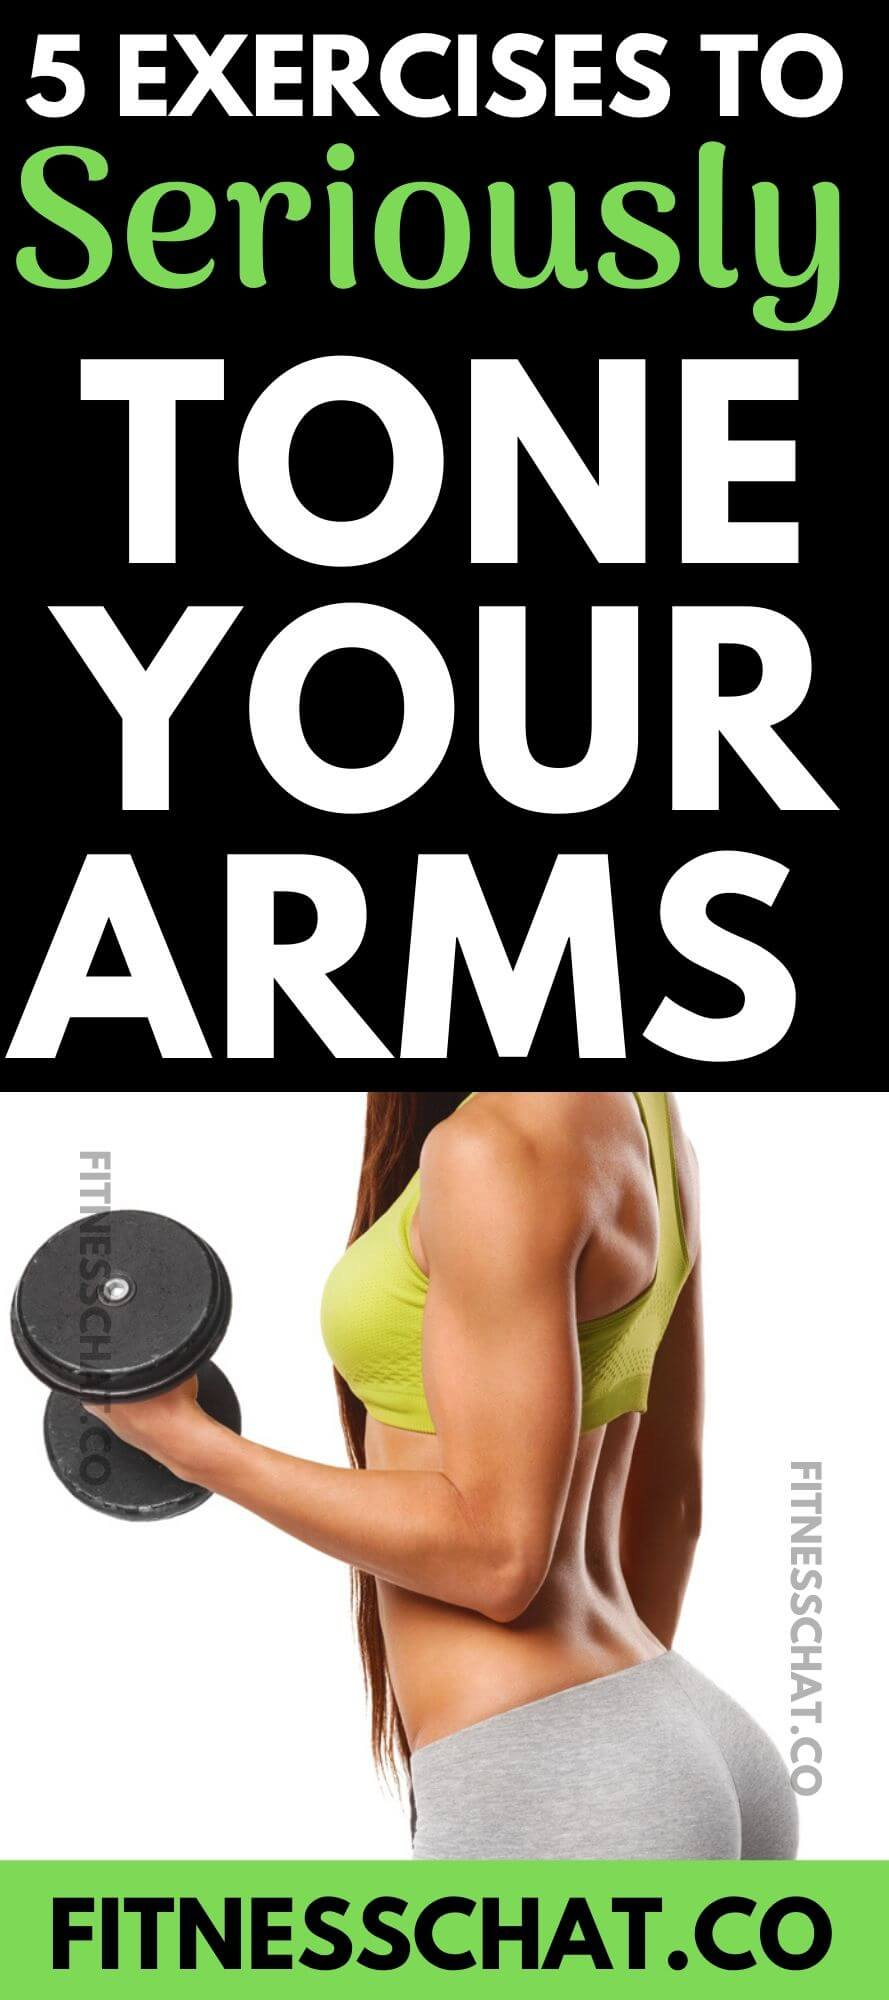 arm exercises for flabby arms and bat wings| Banish flabby arms and arm fat with this killer arm workout for women